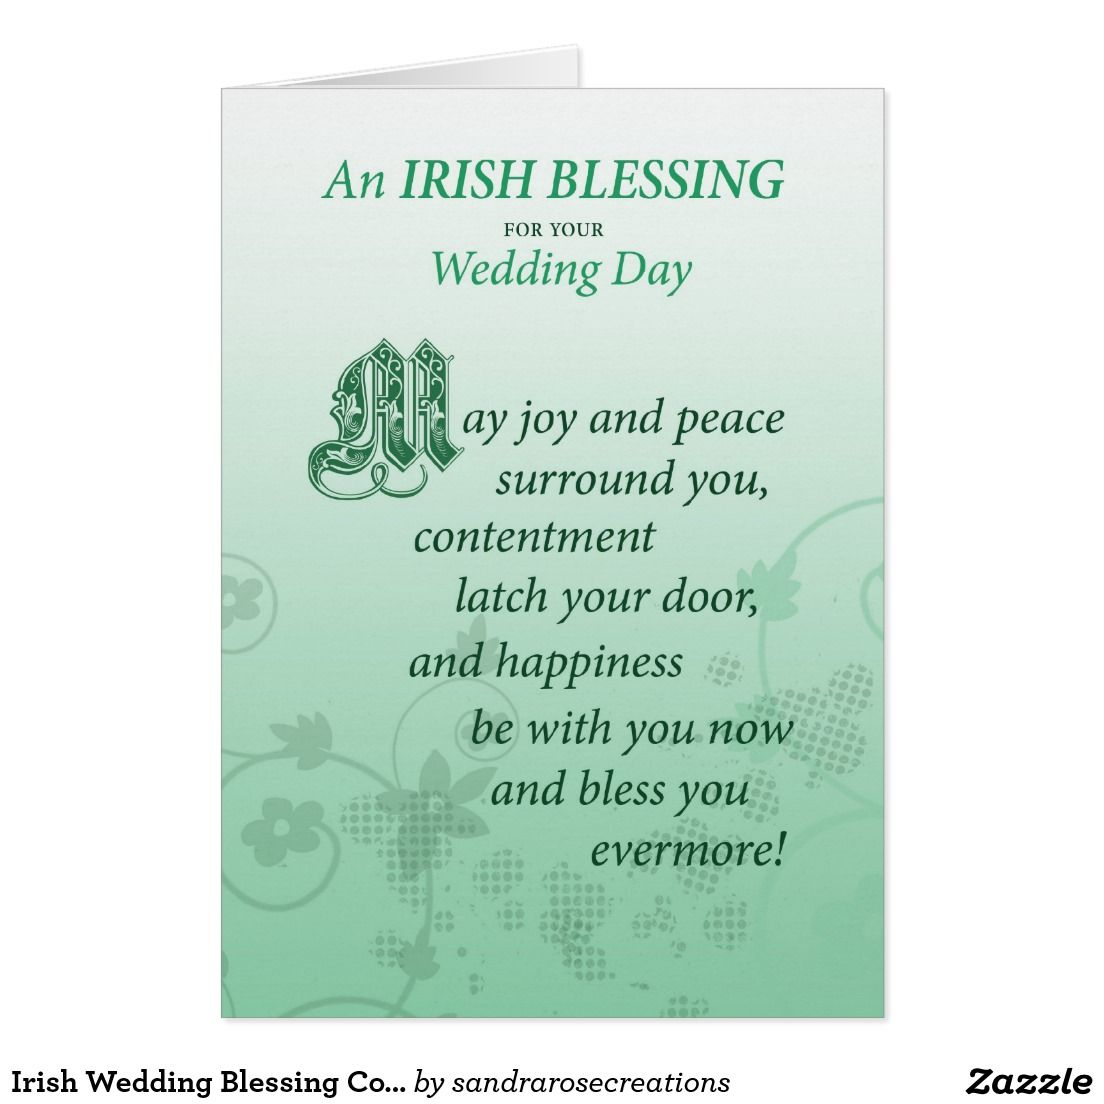 Irish Wedding Blessing Congratulations Card | Wedding ...